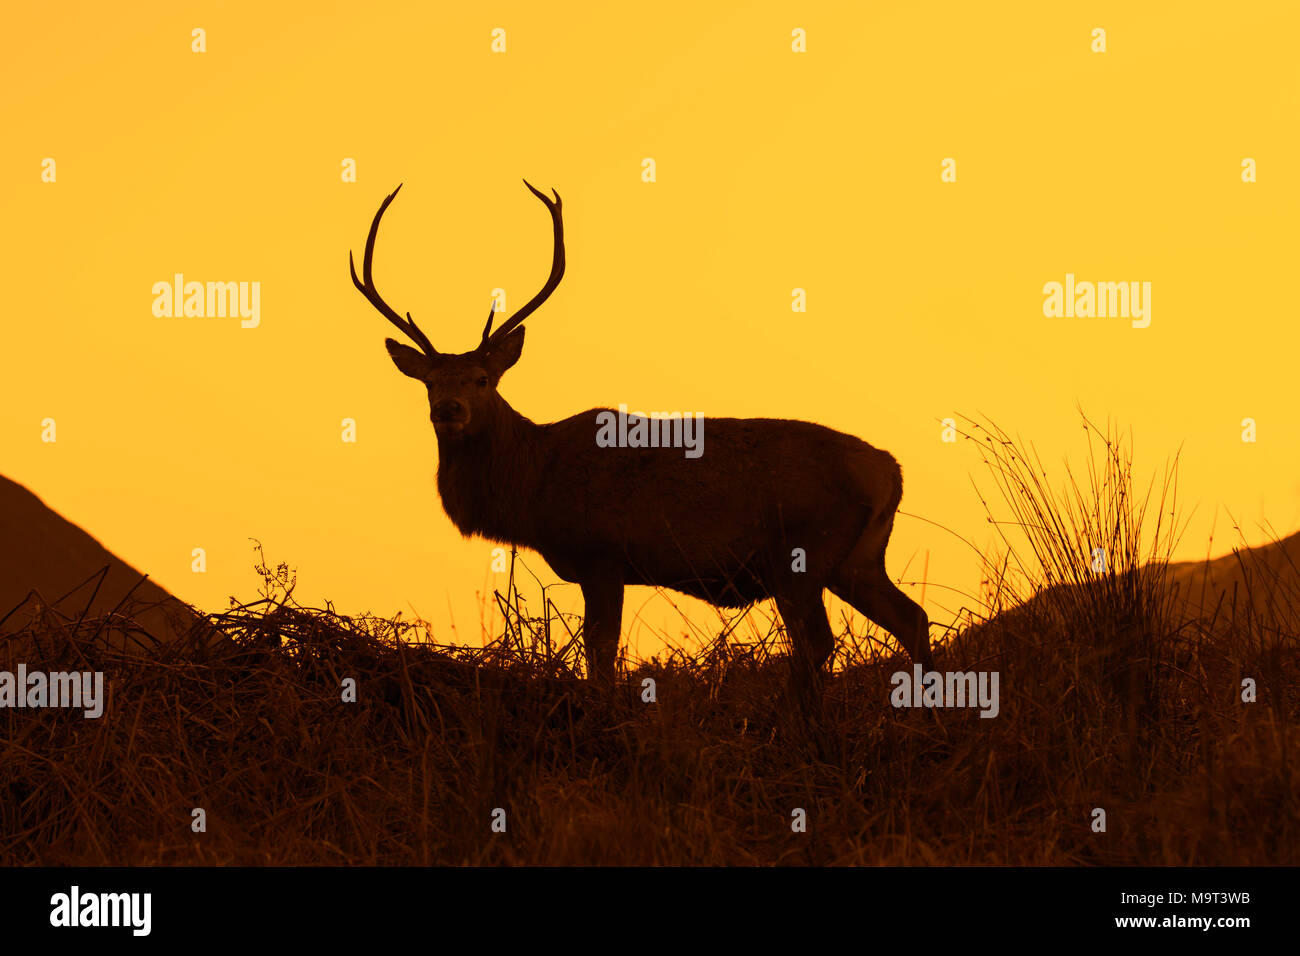 Red deer stag / male (Cervus elaphus) on moorland in the hills silhouetted against sunset in the Scottish Highlands, Scotland, UK - Stock Image